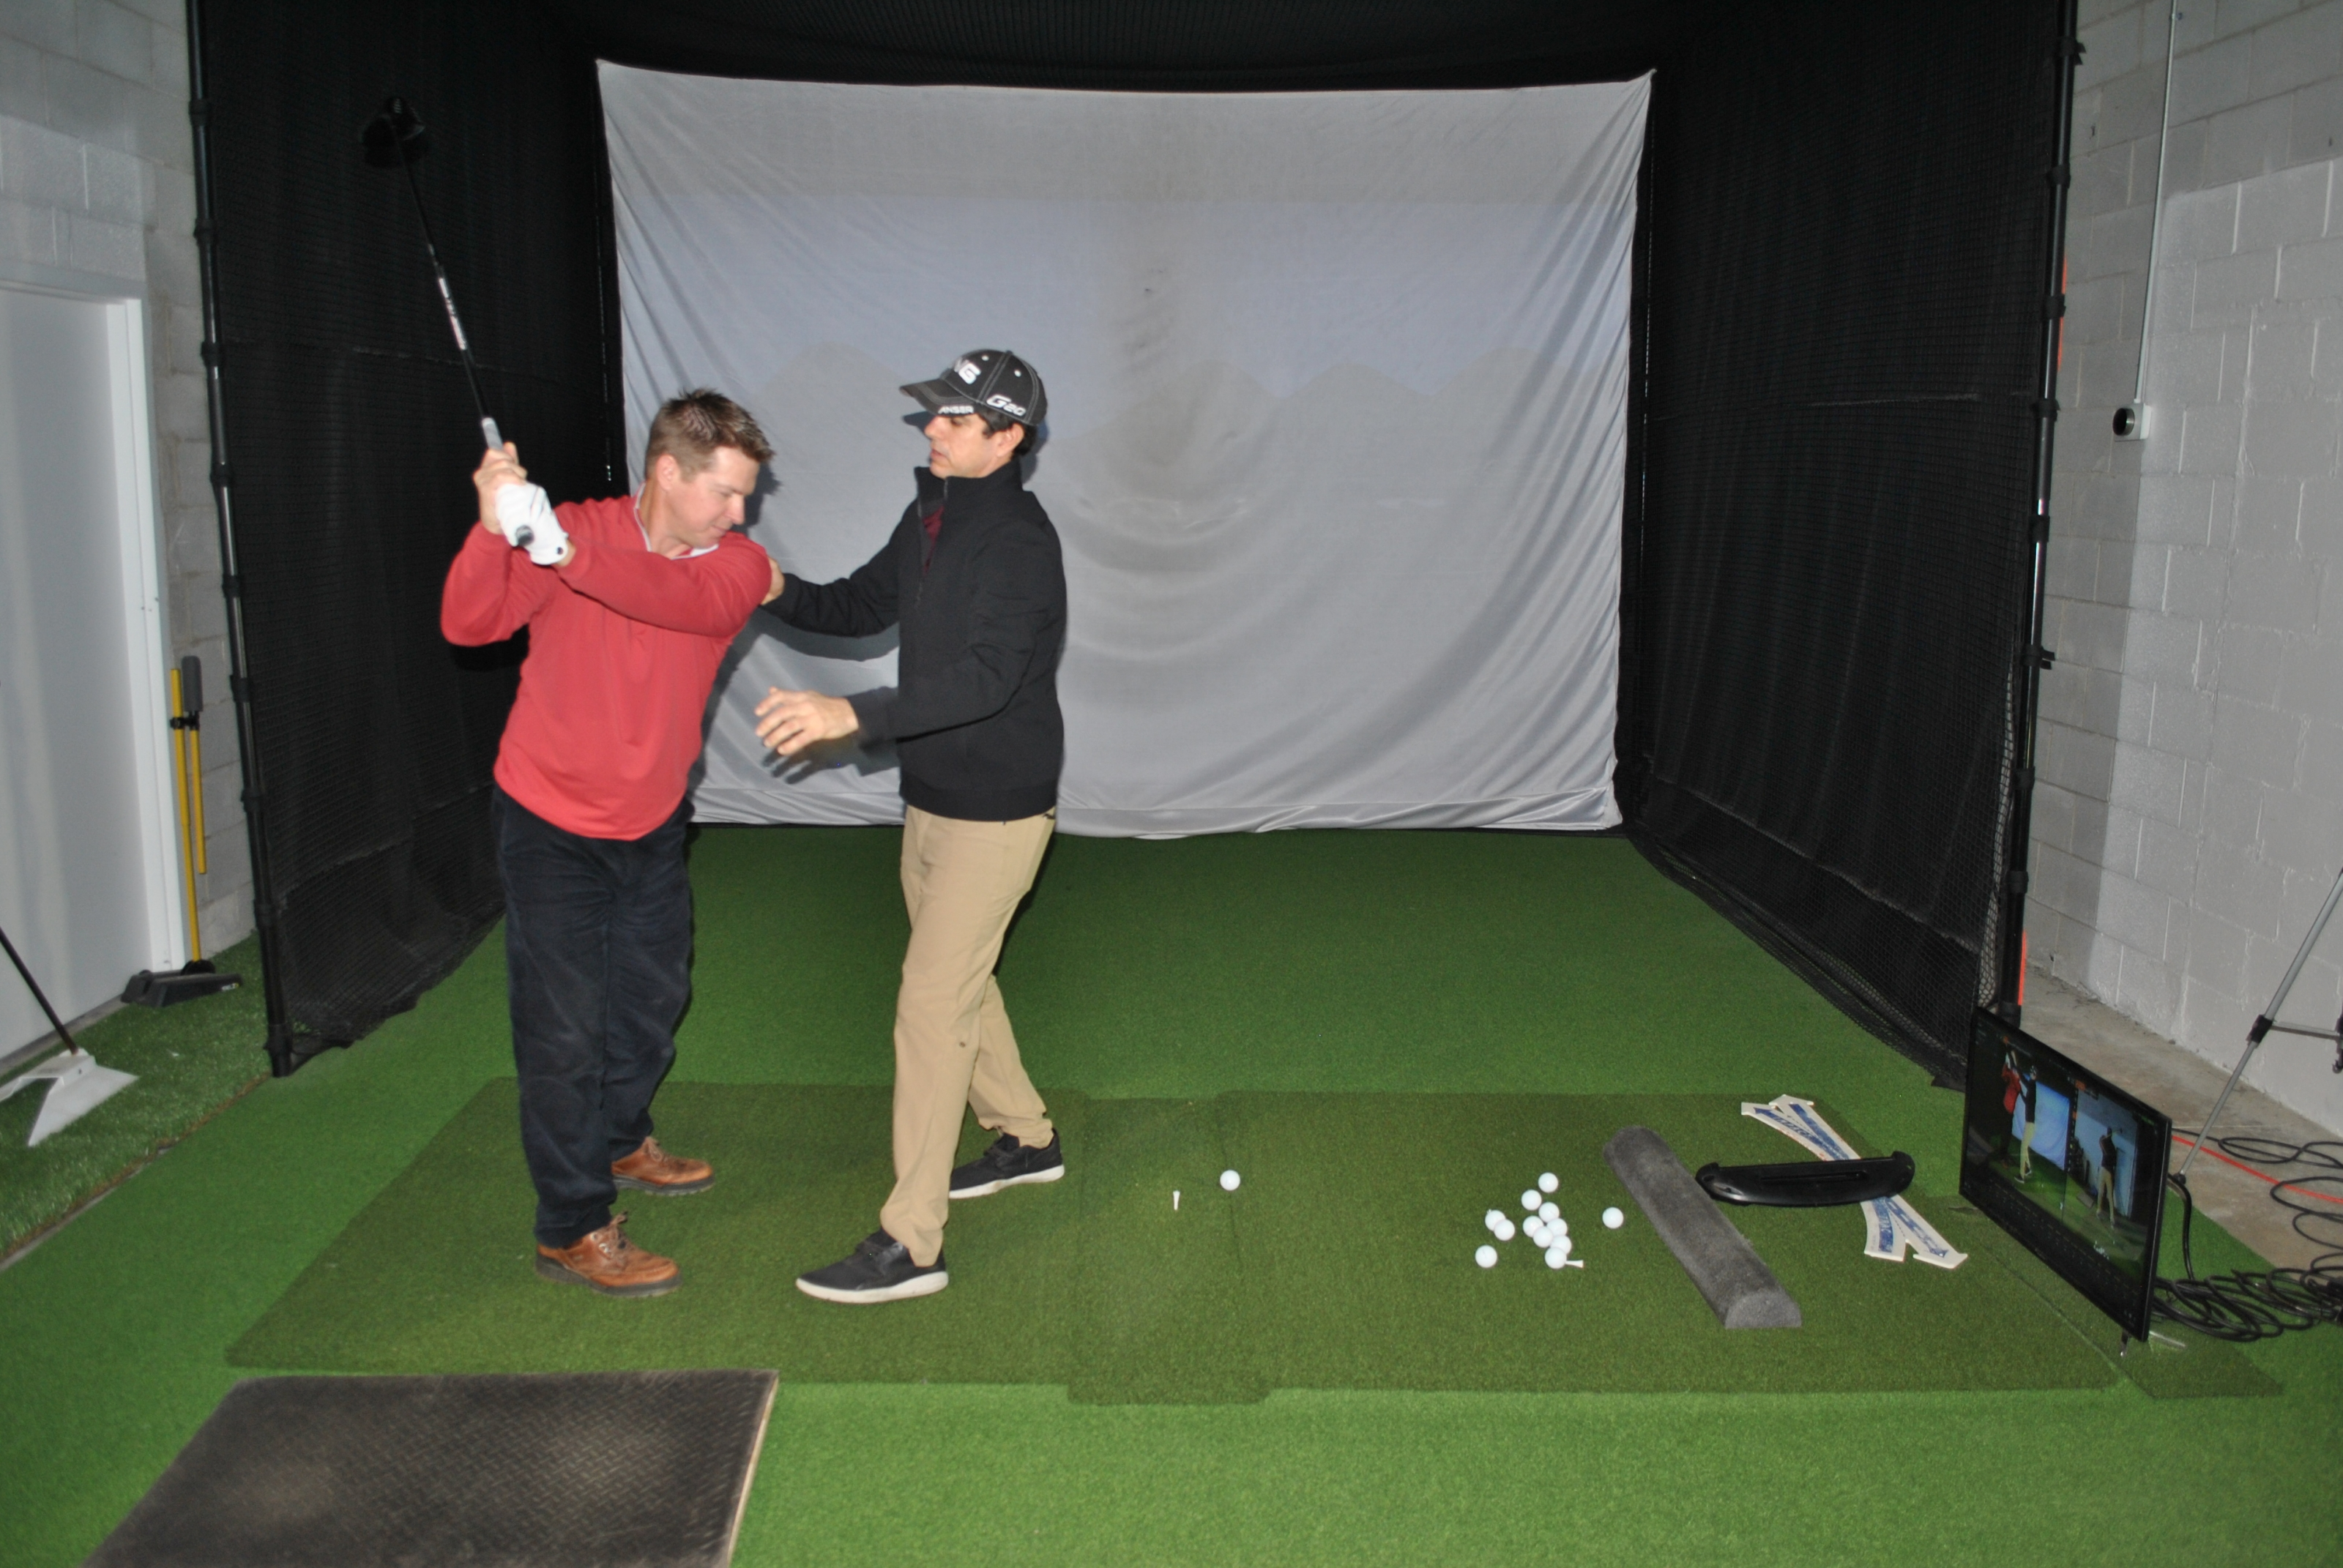 Louis Sauer, Illinois PGA Teacher of the Year, works with a student at his LS Golf studio in Northbrook